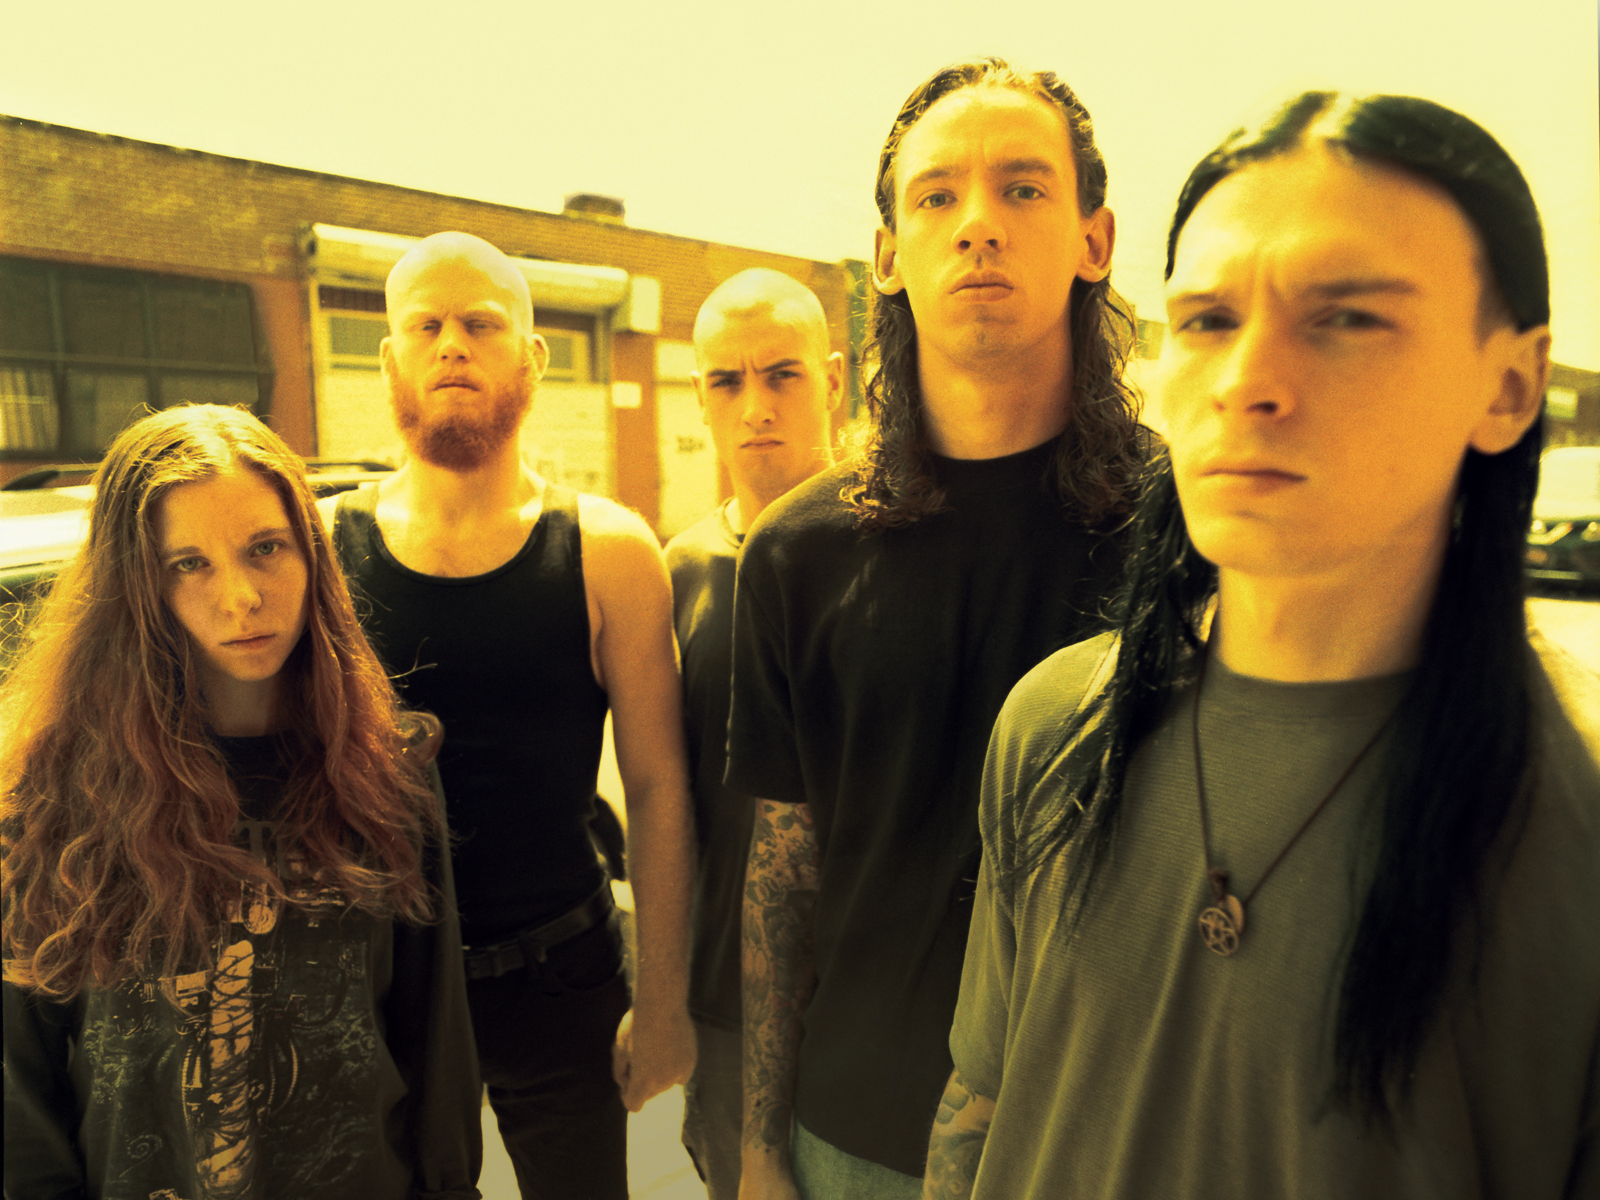 2017 Breakthrough Band Code Orange Appears On Cover Of New